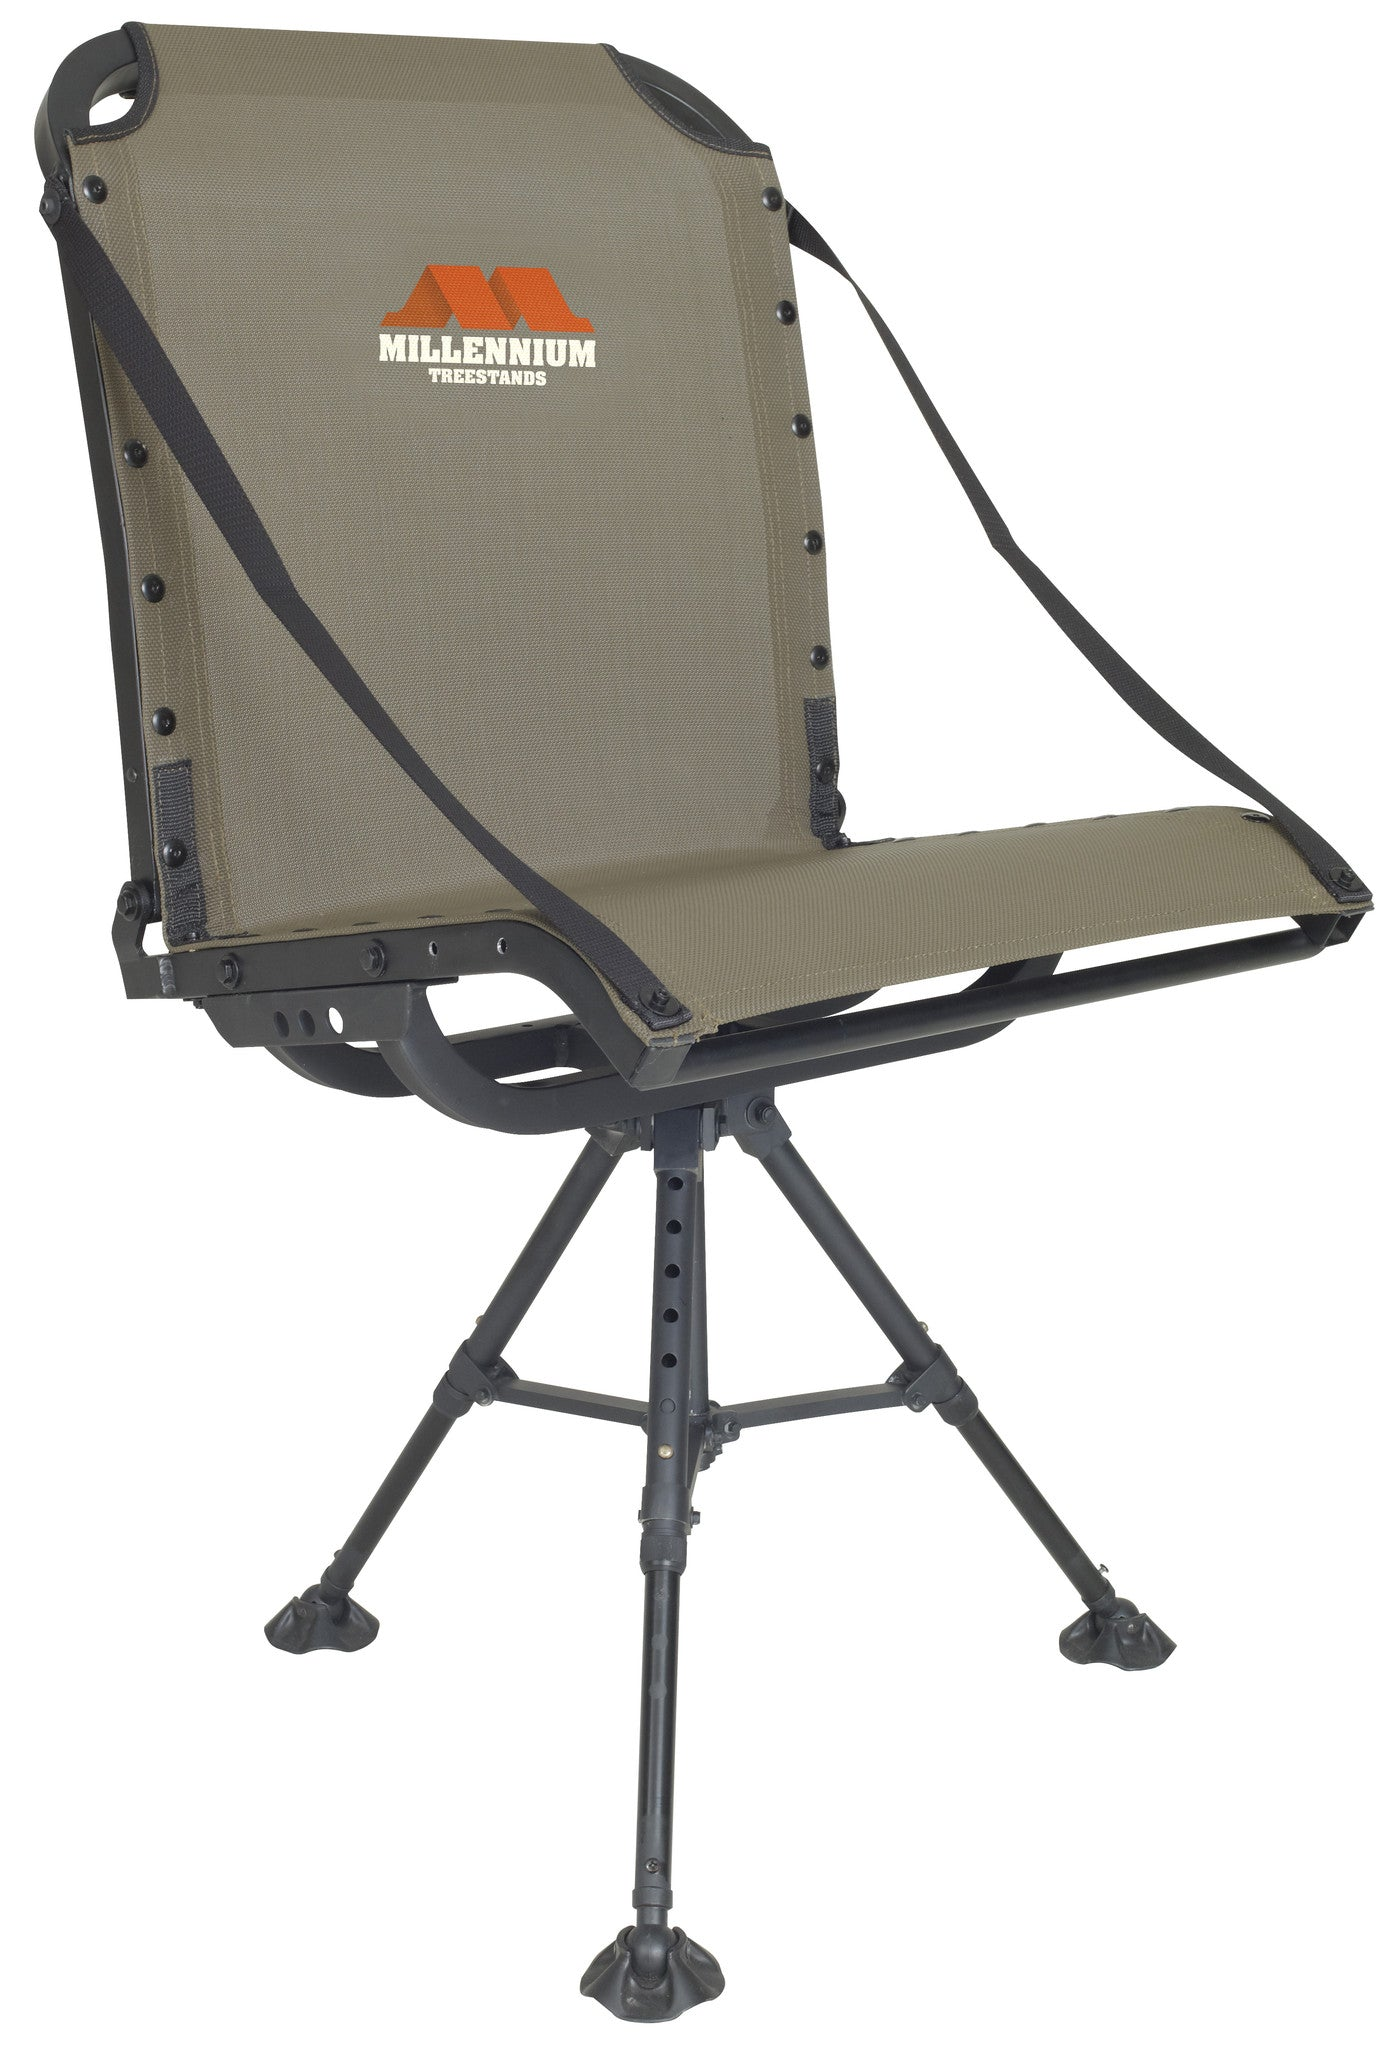 Millennium G100 Blind Chair – Hunter Tree Stands